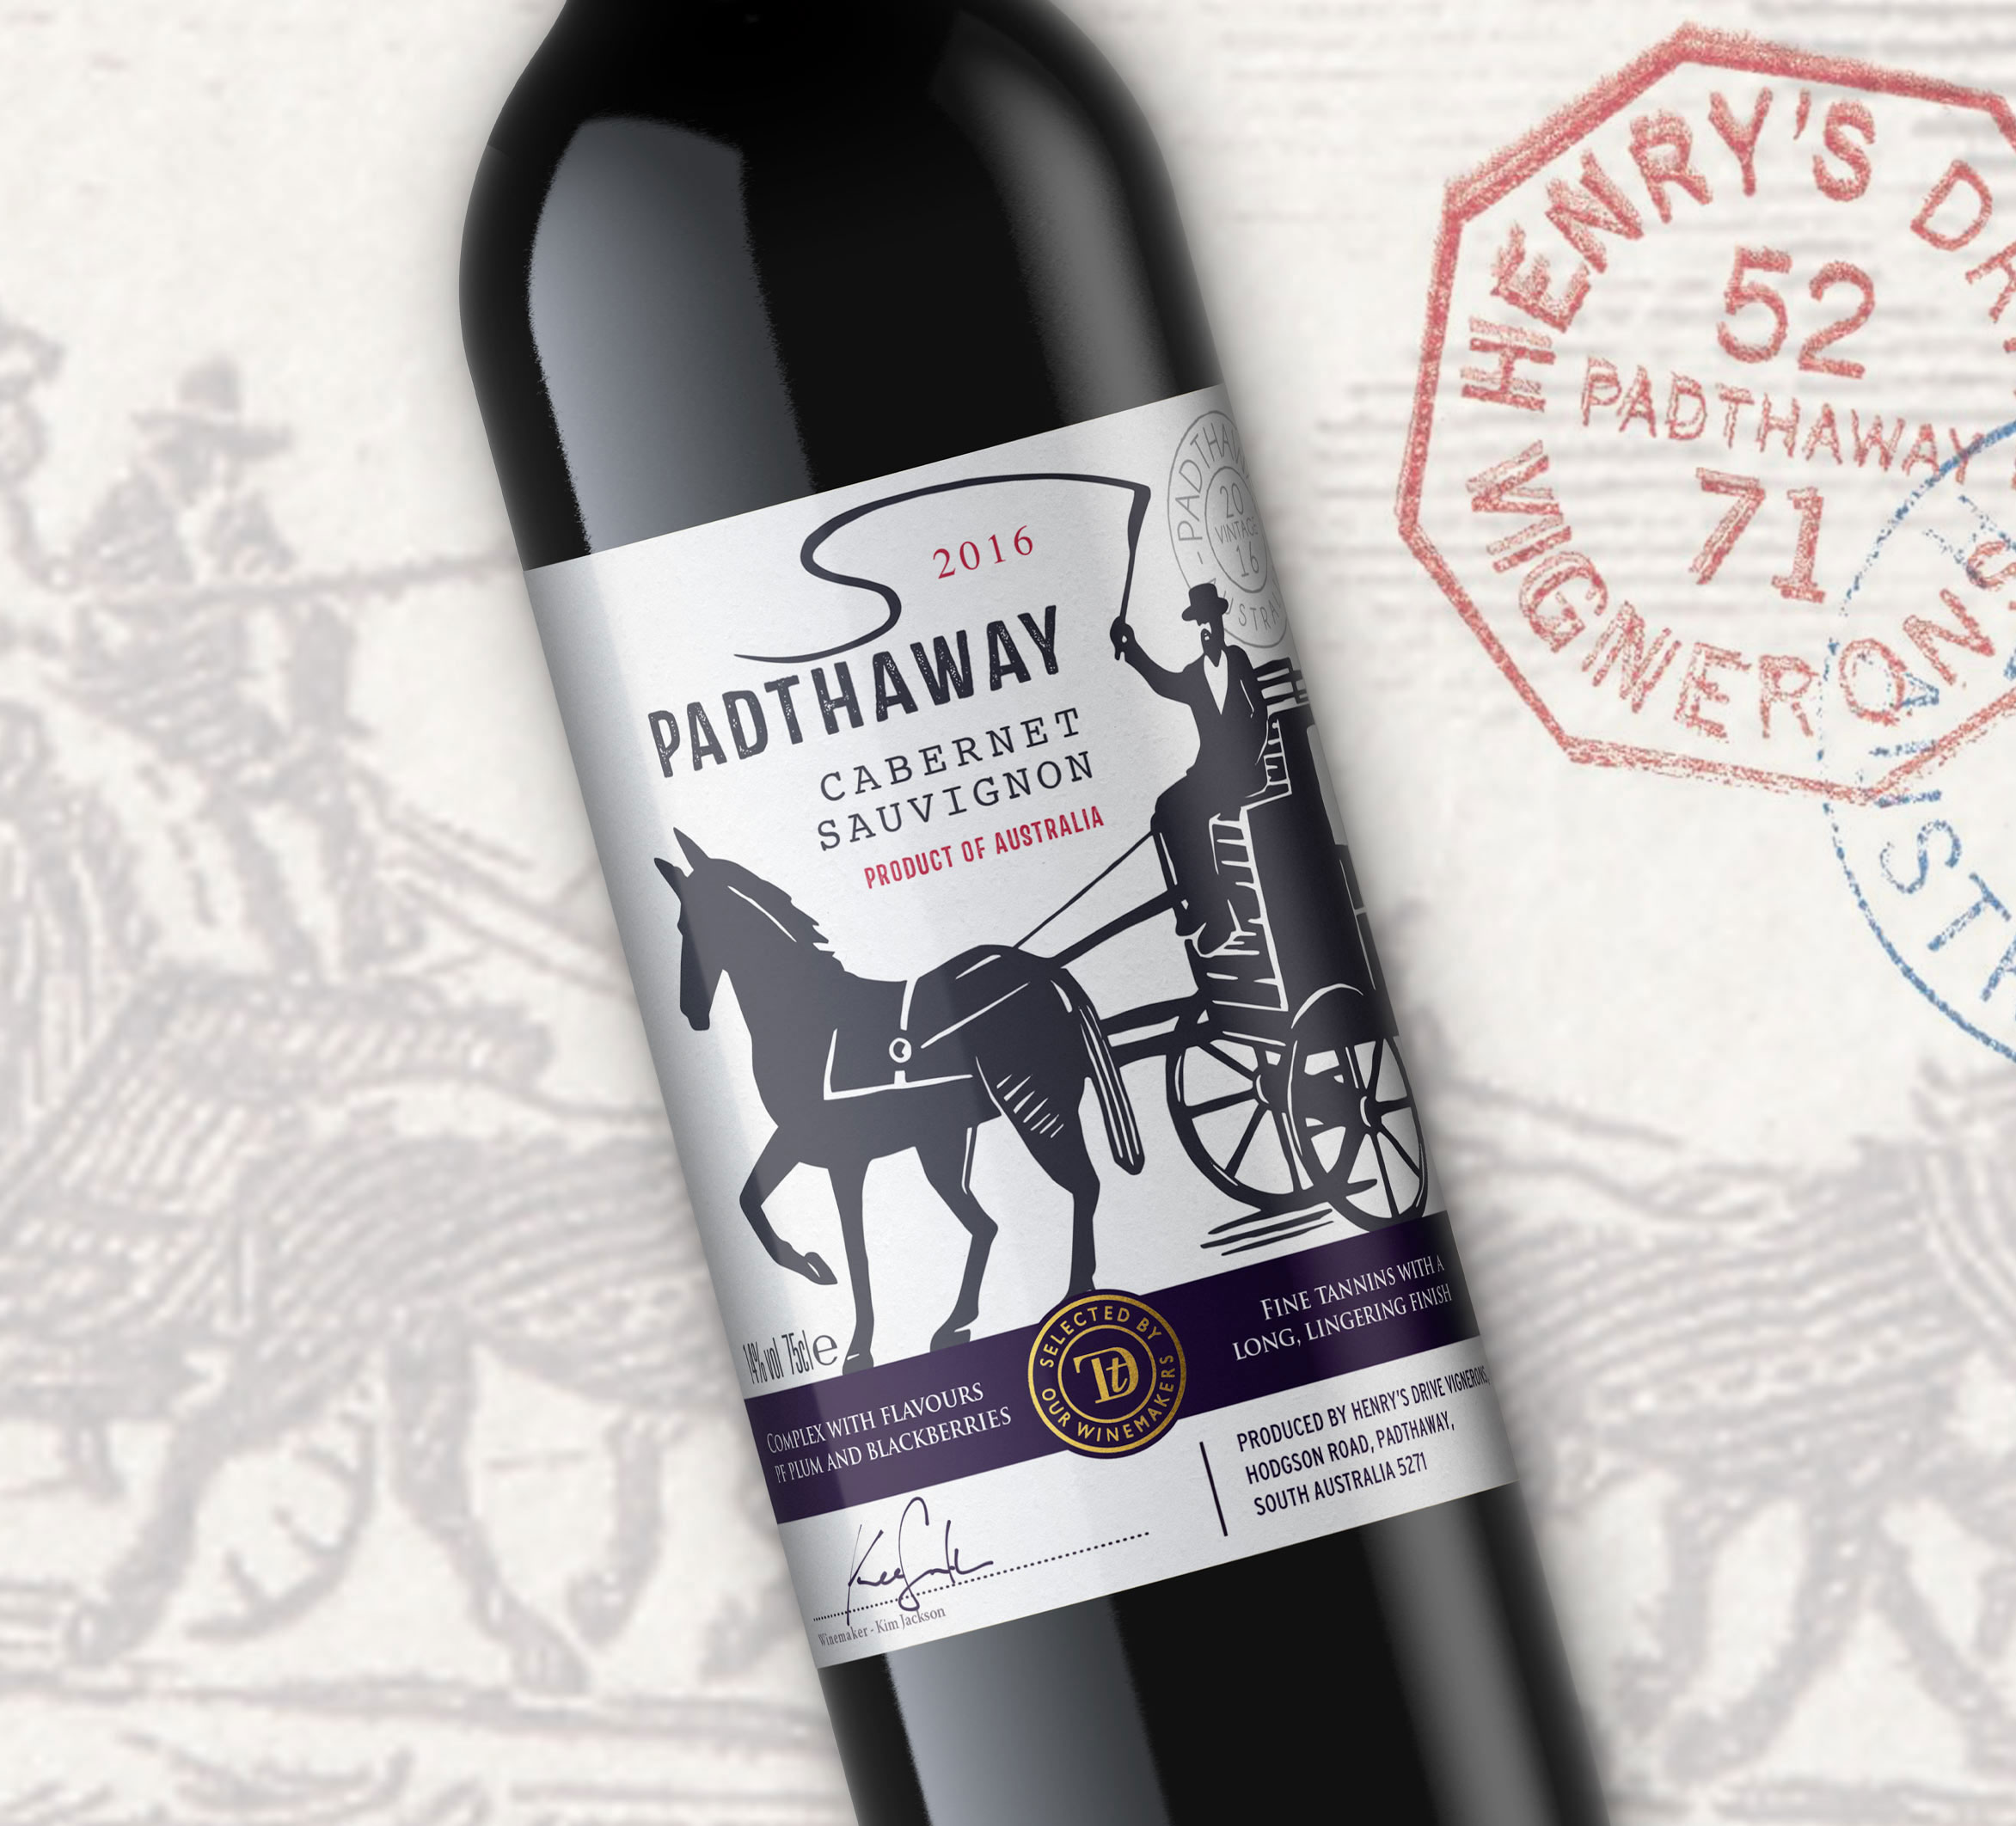 Sainsbury's Taste the Difference - Merlot